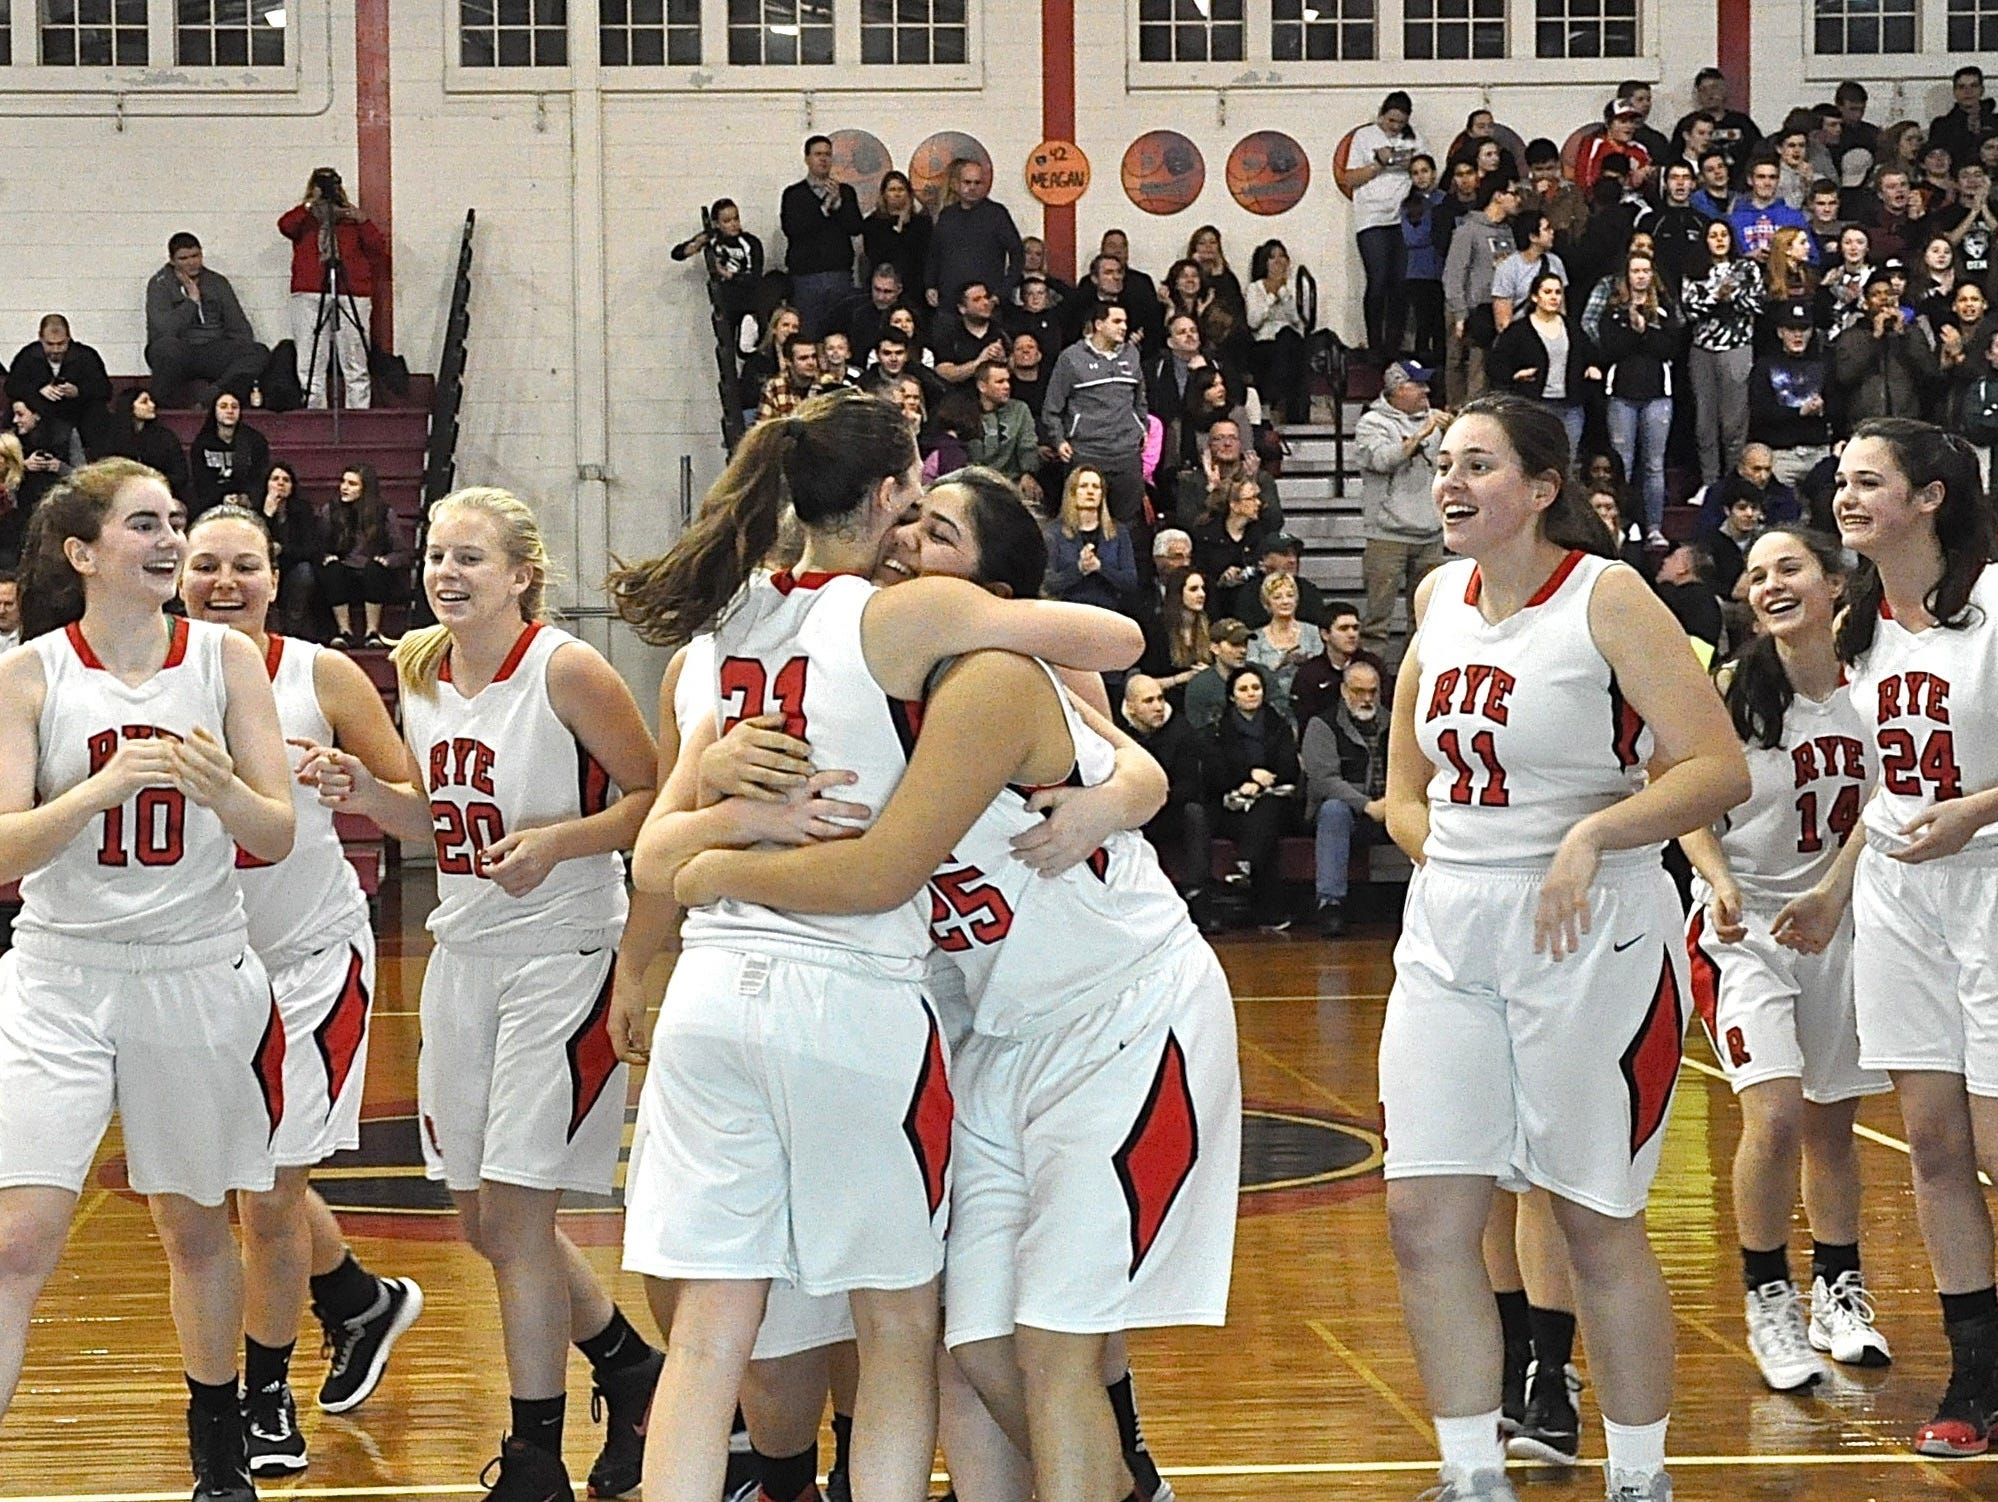 Rye celebrates its third trip in a row to the County Center after defeating Brewster in the Class A quarterfinals.